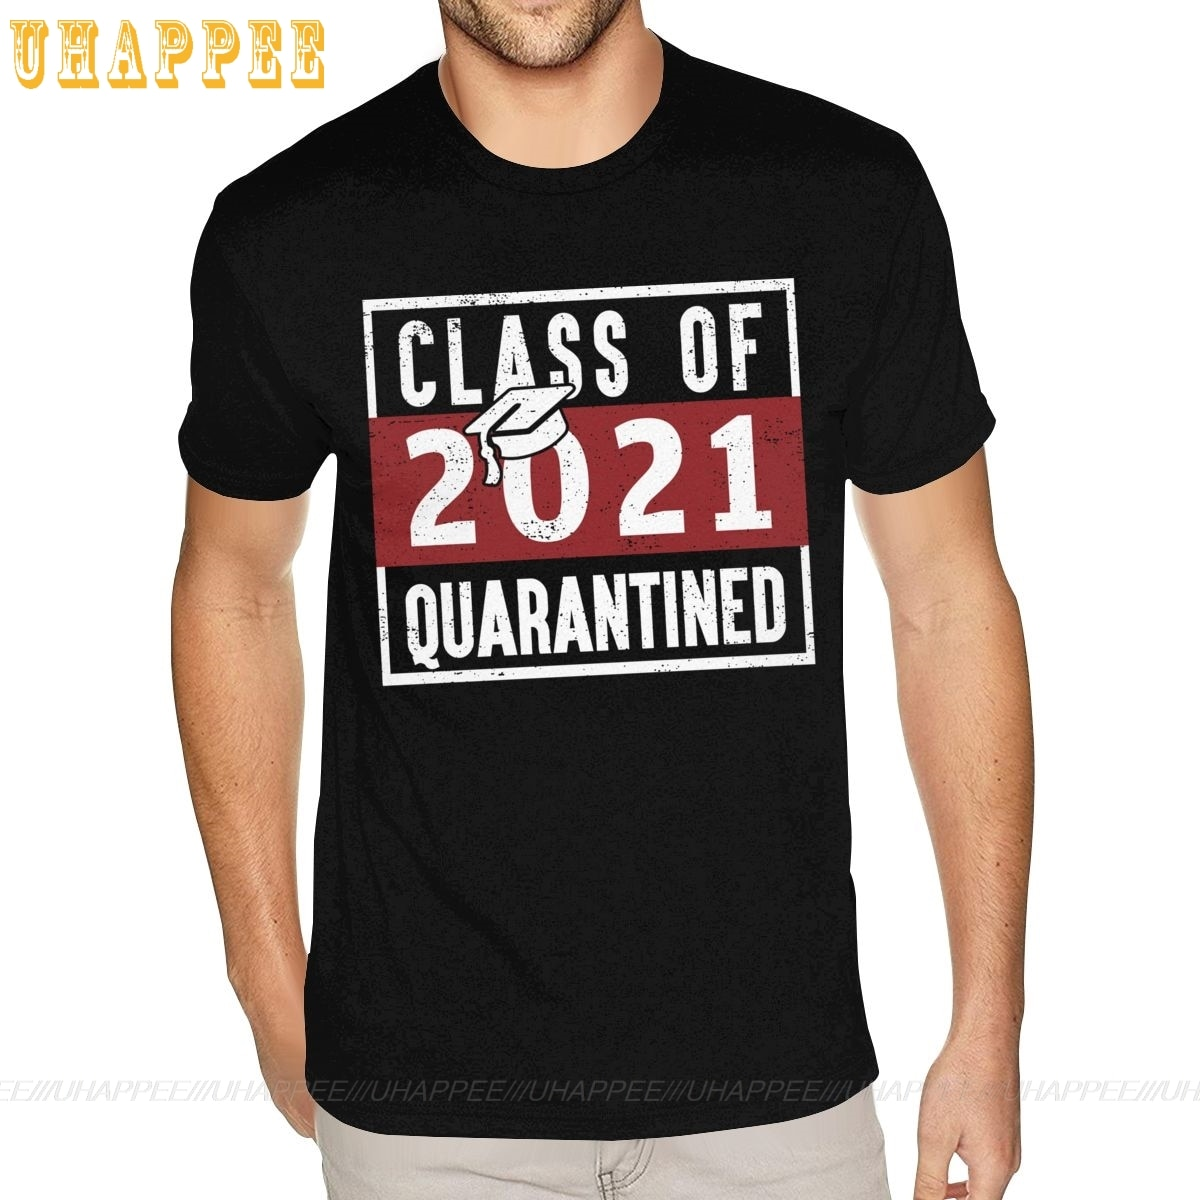 Printed Class Of 2021 Quarantined Tshirt White Short Sleeve Boys XXXL Black Tshirt